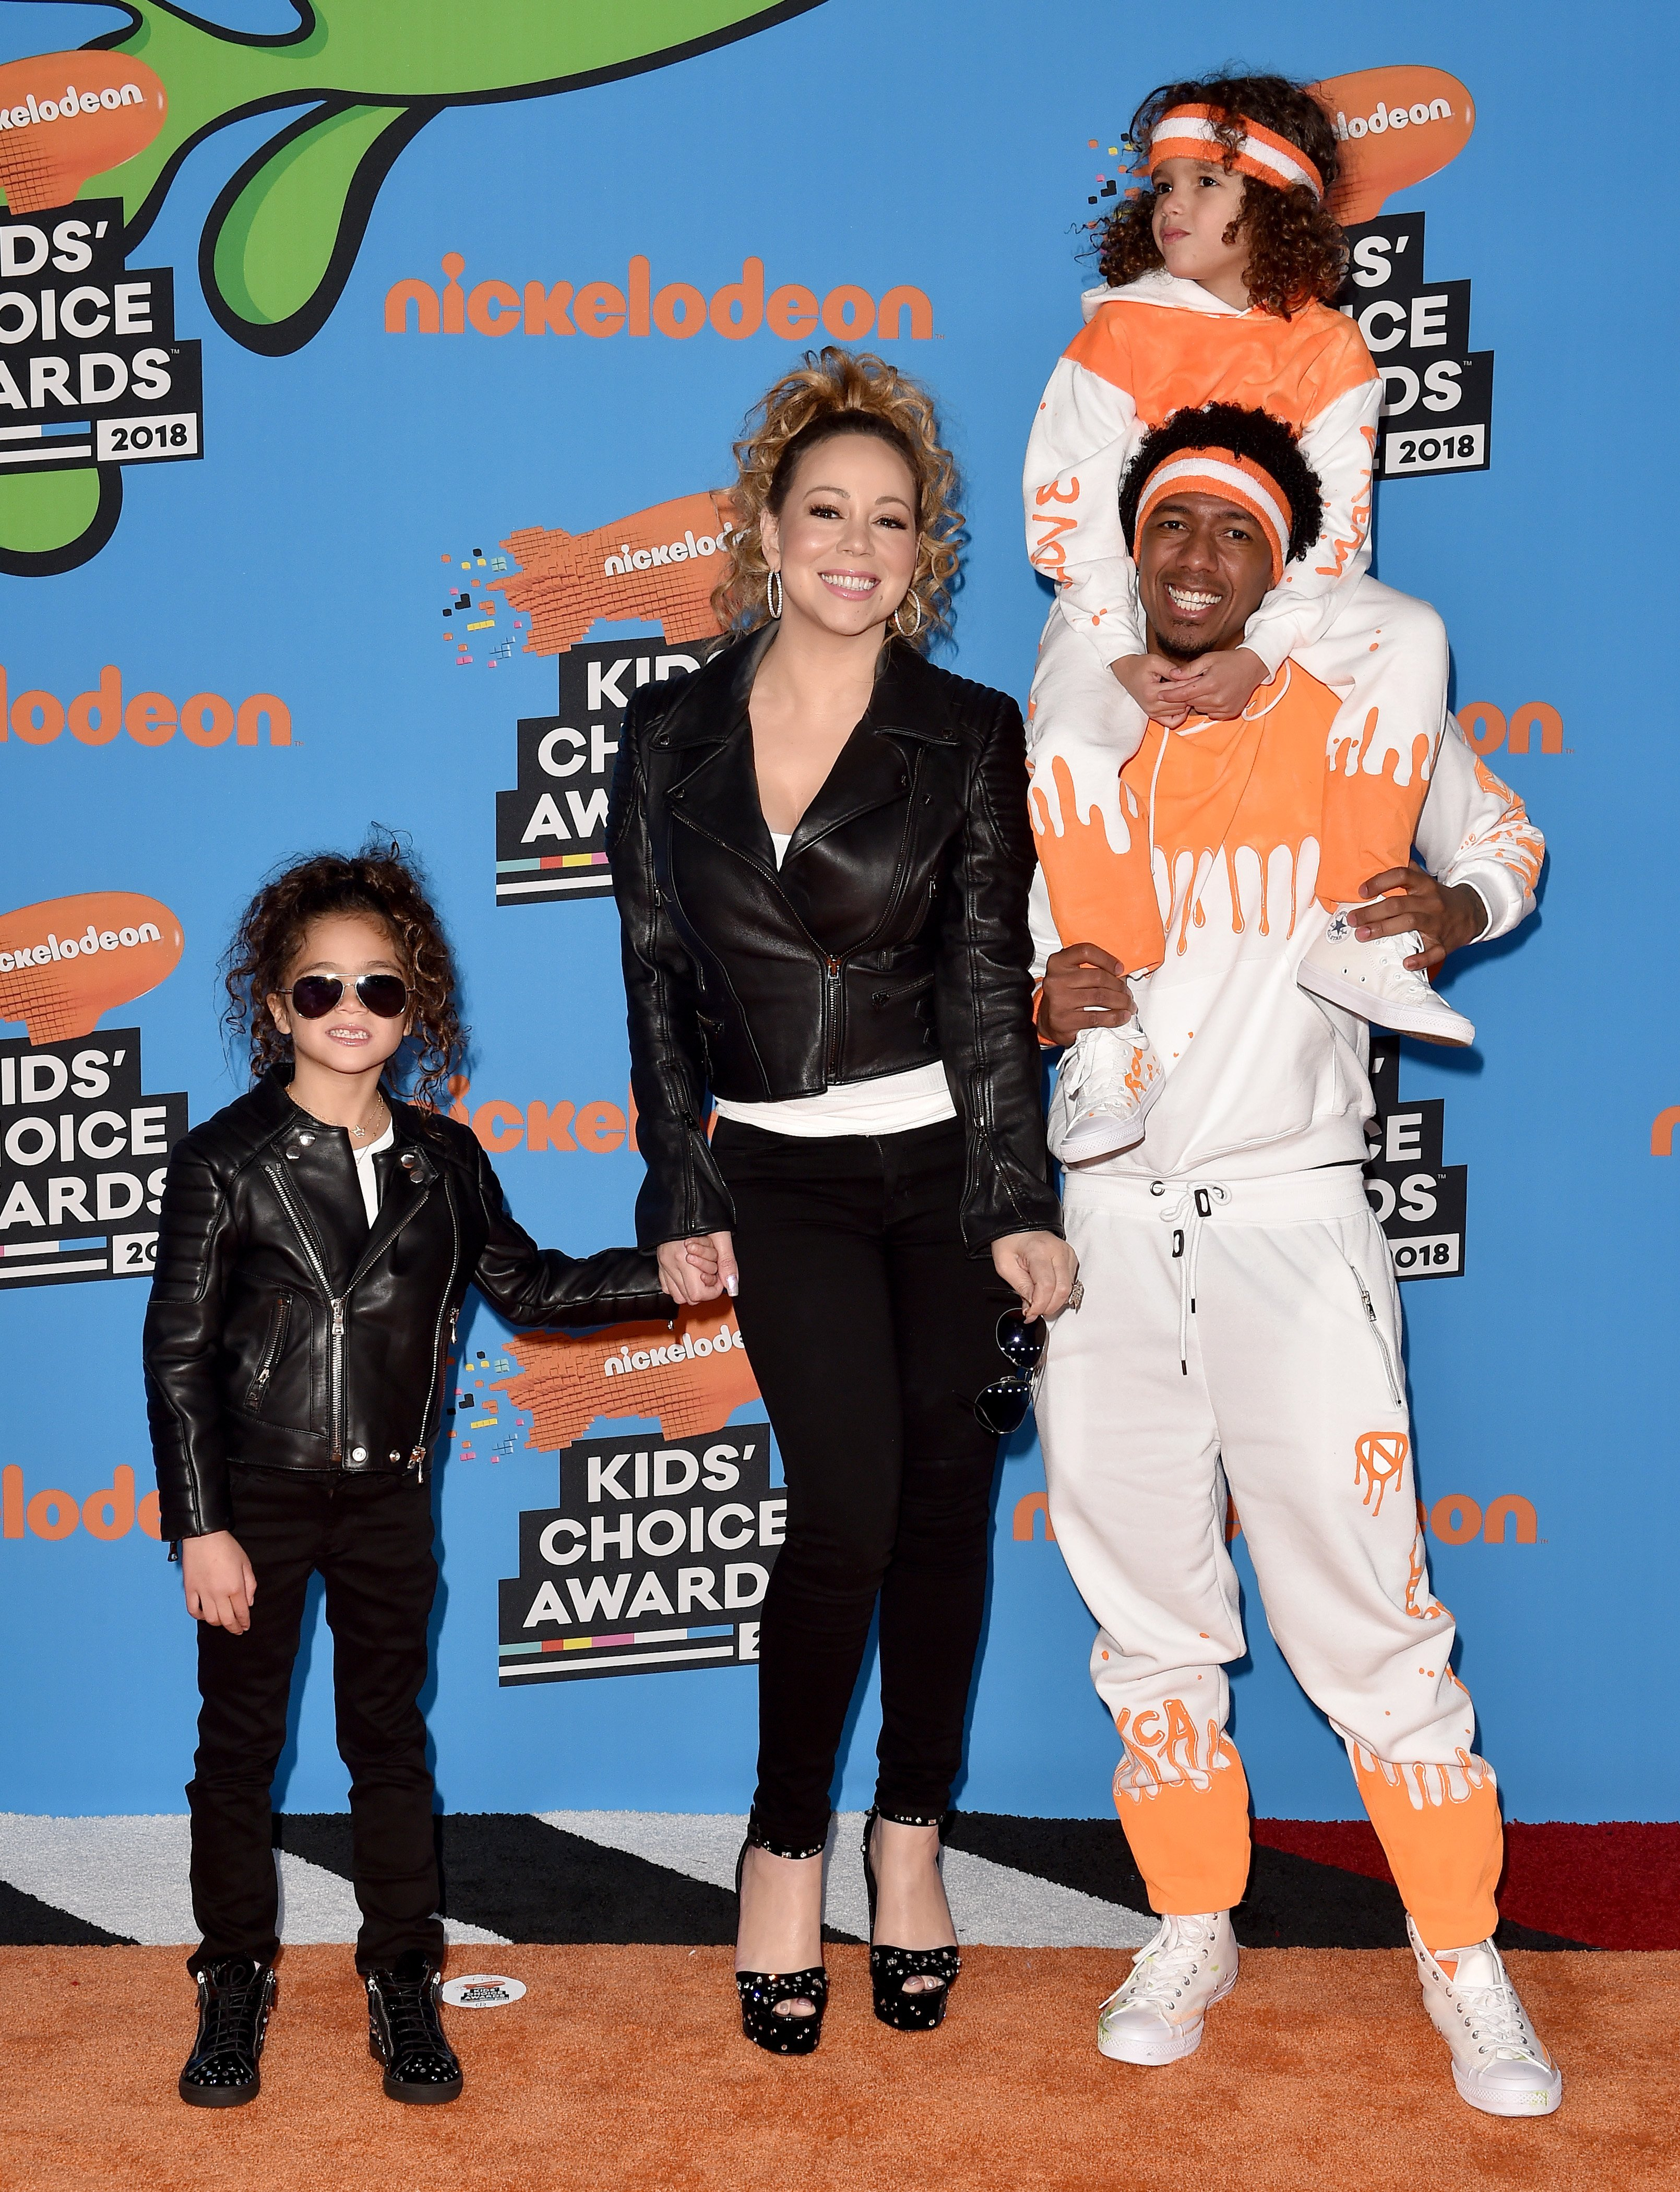 Mariah Carey, Nick Cannon, daughter Monroe Cannon and son Moroccan Cannon attend Nickelodeon's 2018 Kids' Choice Awards| Photo: Getty Images